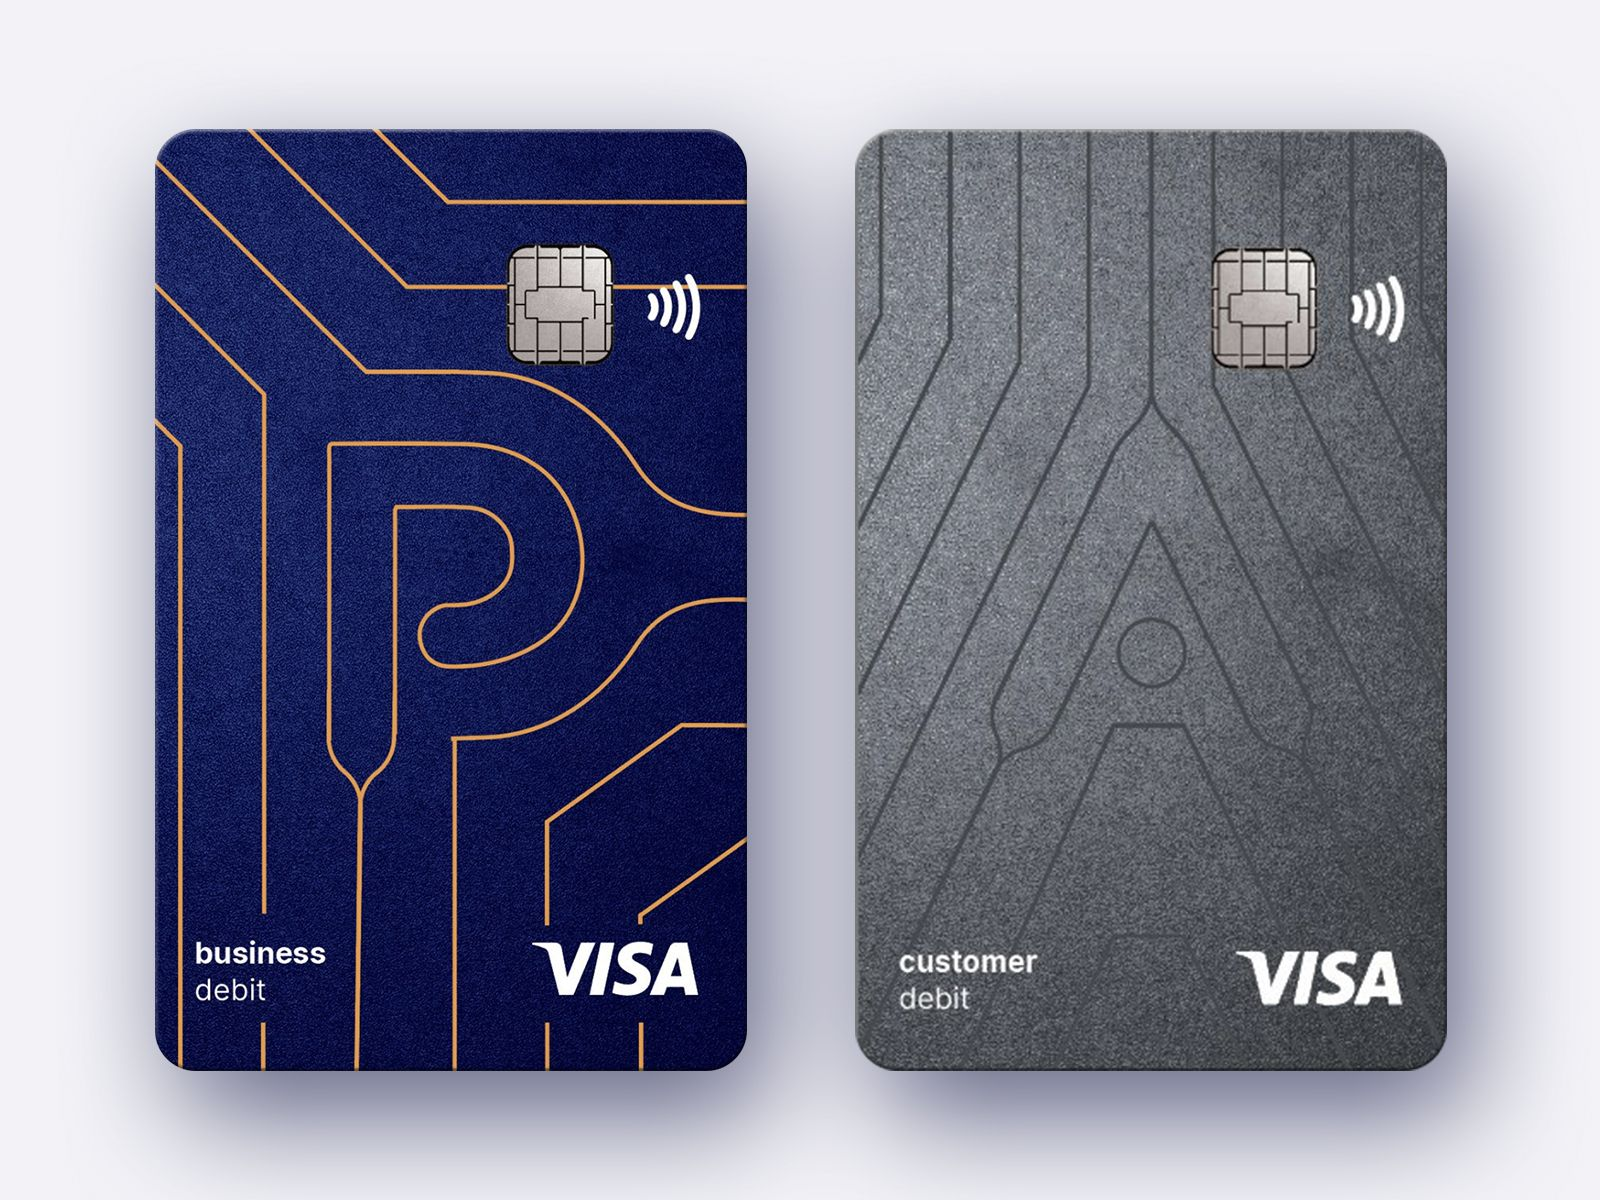 Card branding for fintech company in 2020 with images